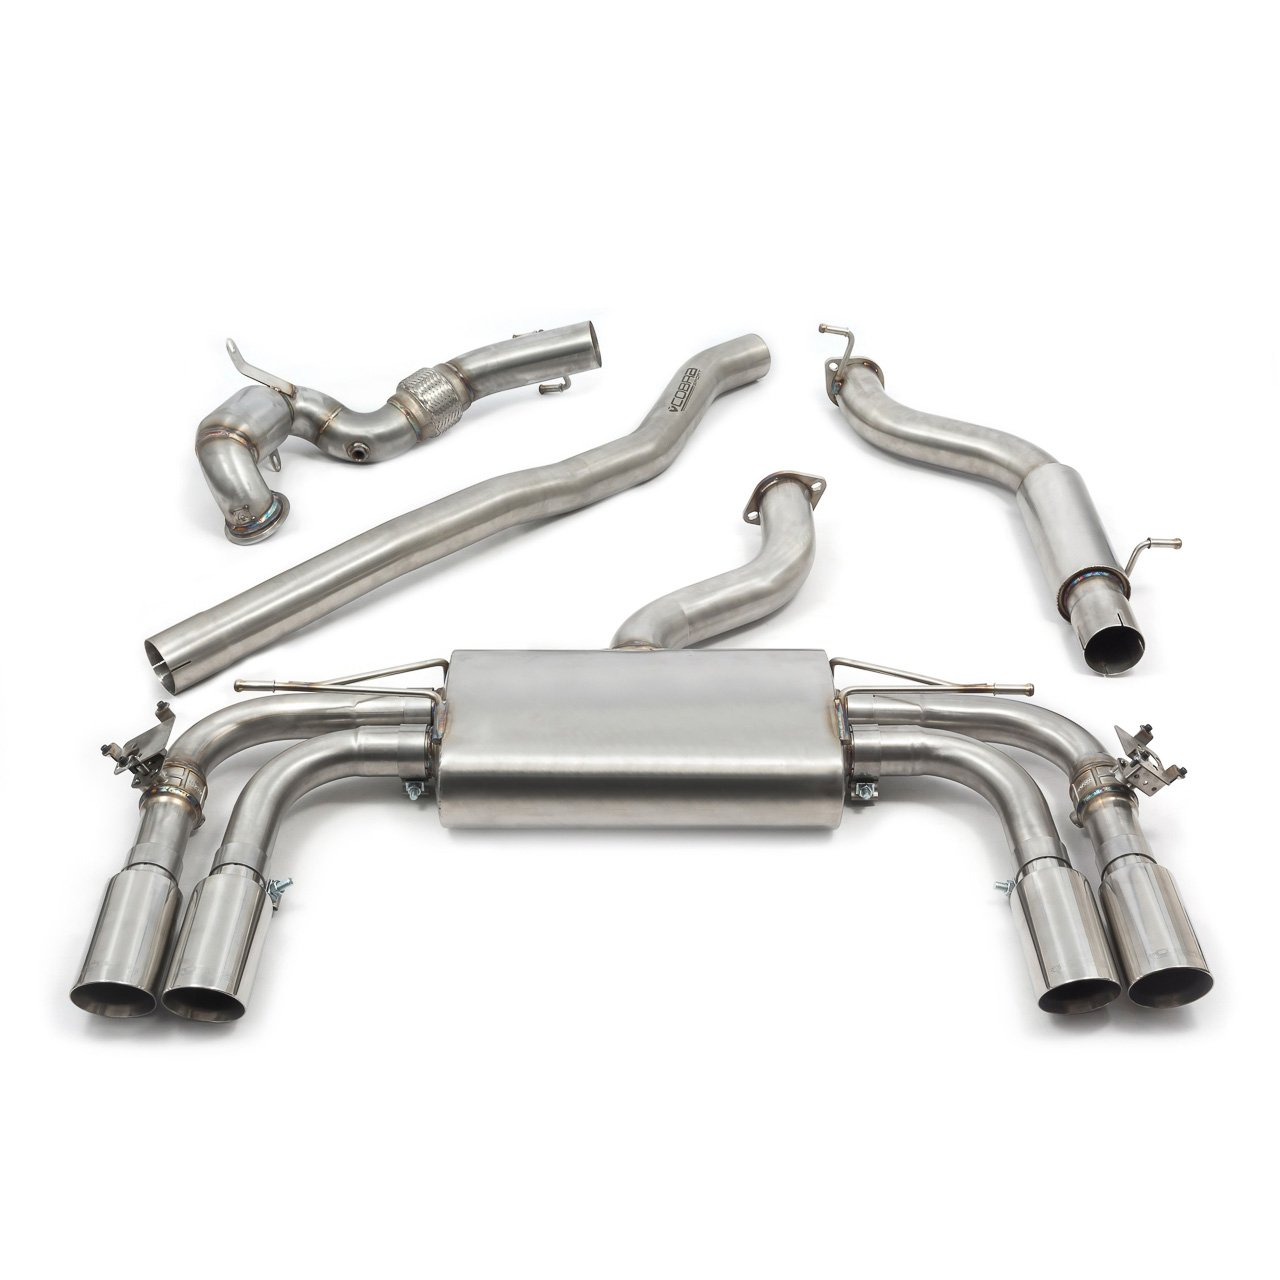 Audi S3 (8V) 5 Door Sportback (Valved) Turbo Back Performance Exhaust